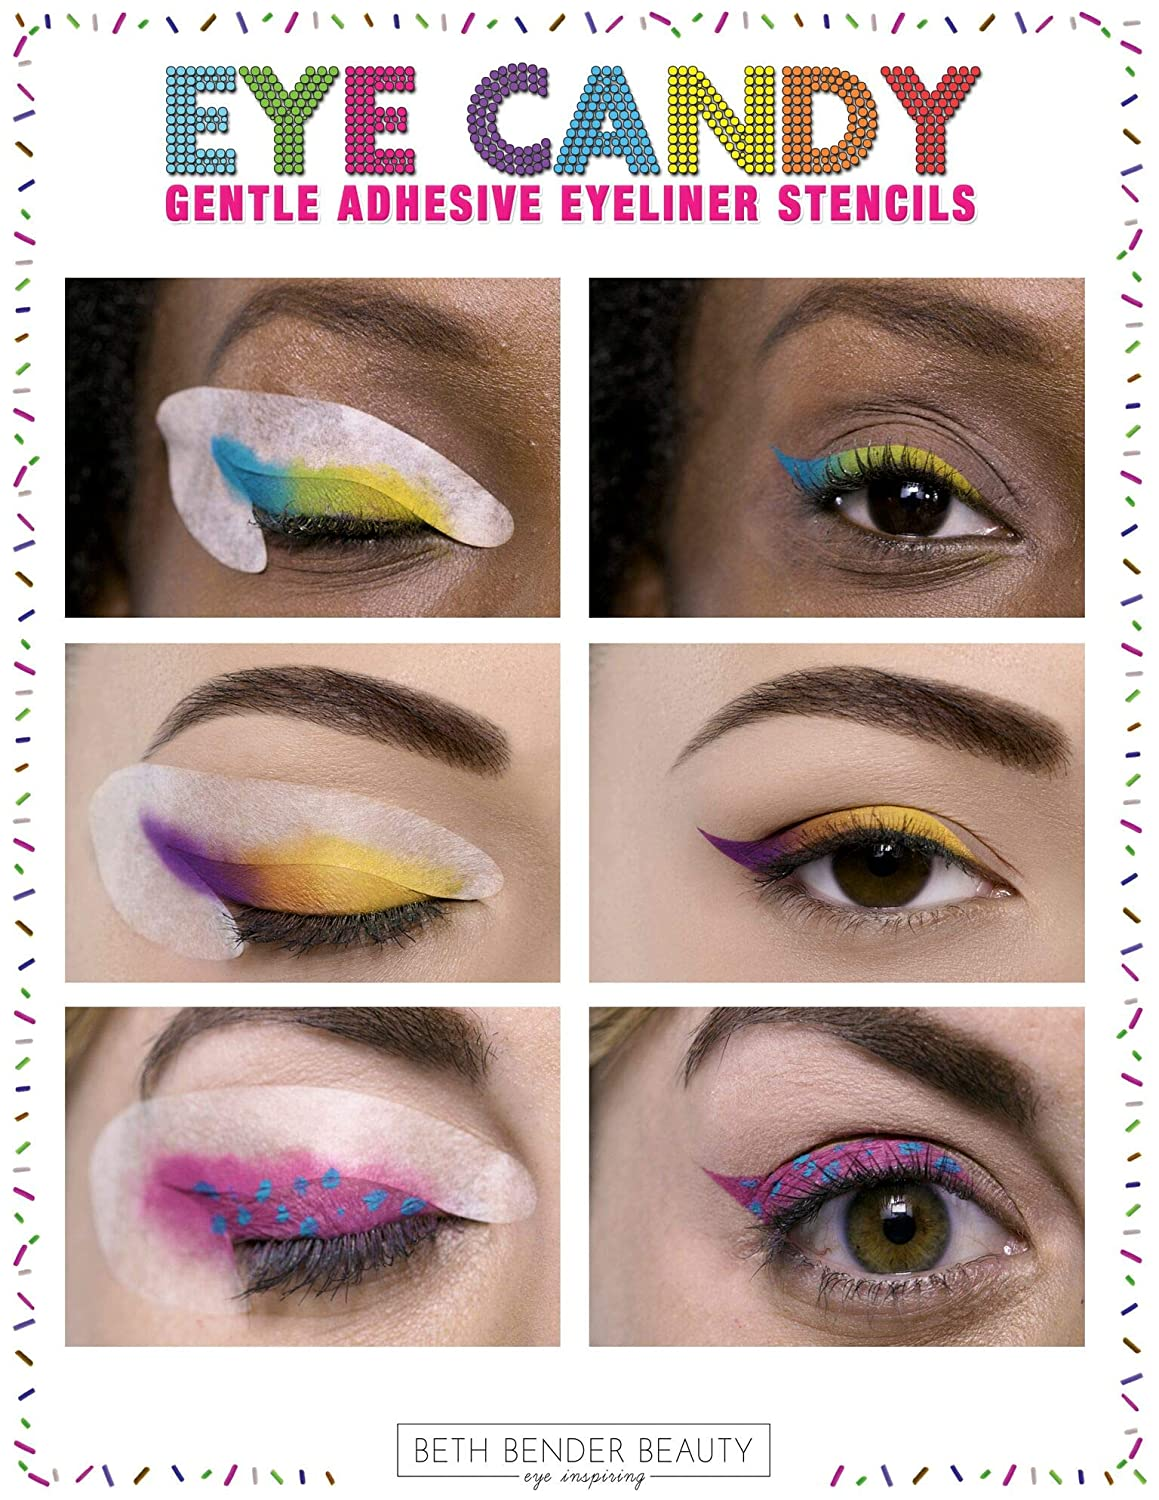 photograph regarding Eyeliner Stencil Printable known as beth bender elegance Eye Sweet Eyeliner Stencil Pads - For